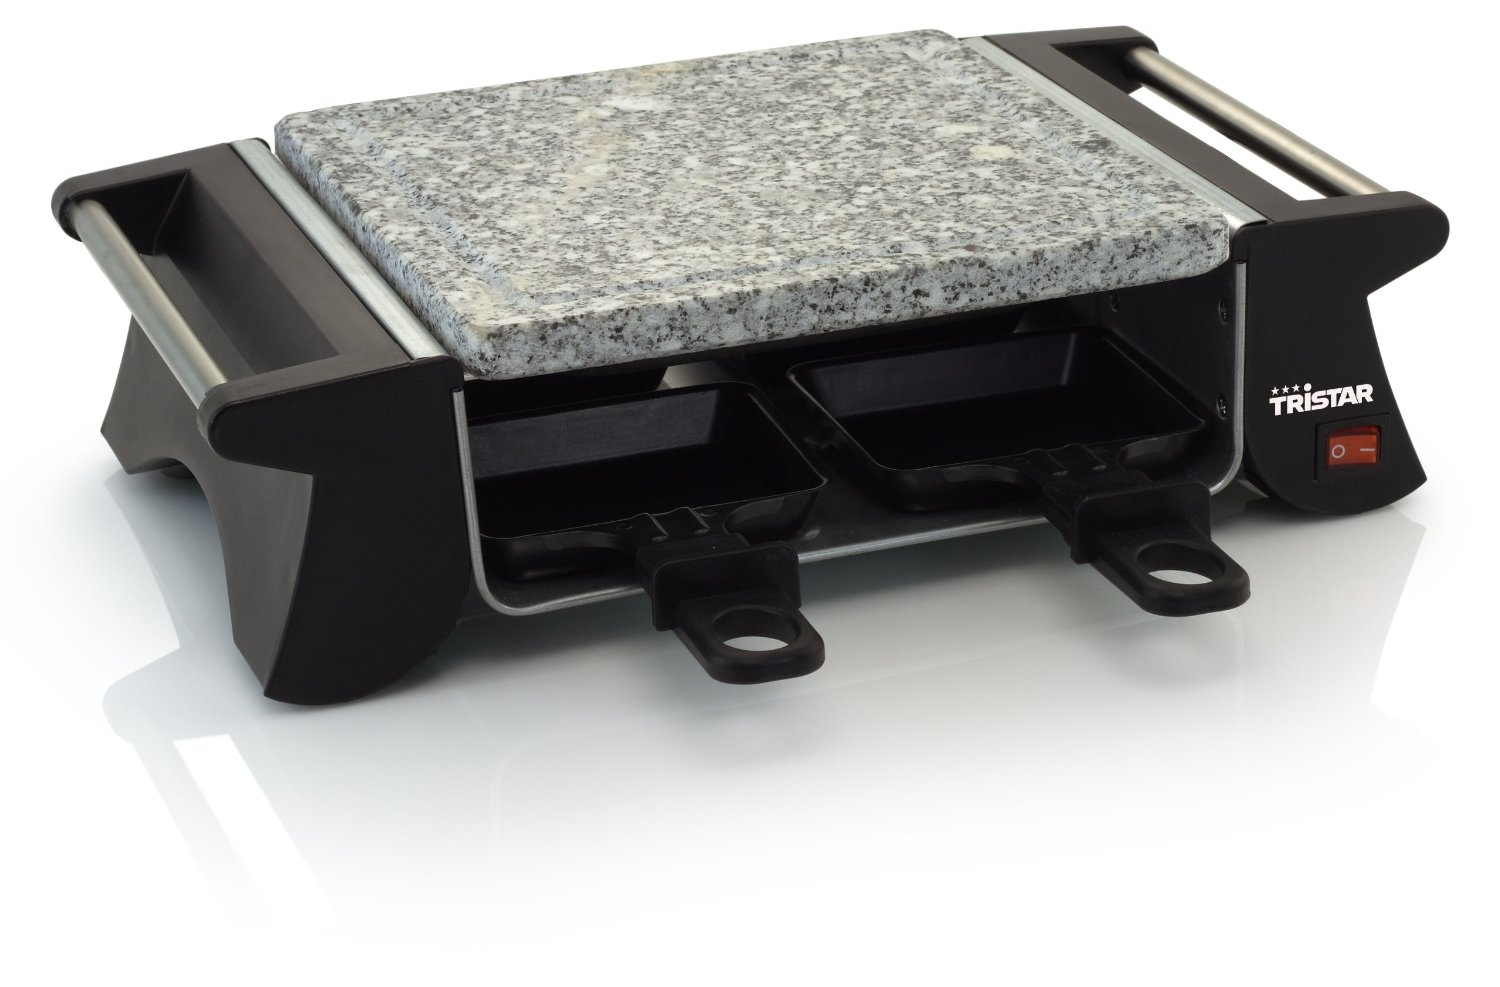 Tristar RA-2990 Raclette-/ Steingrill